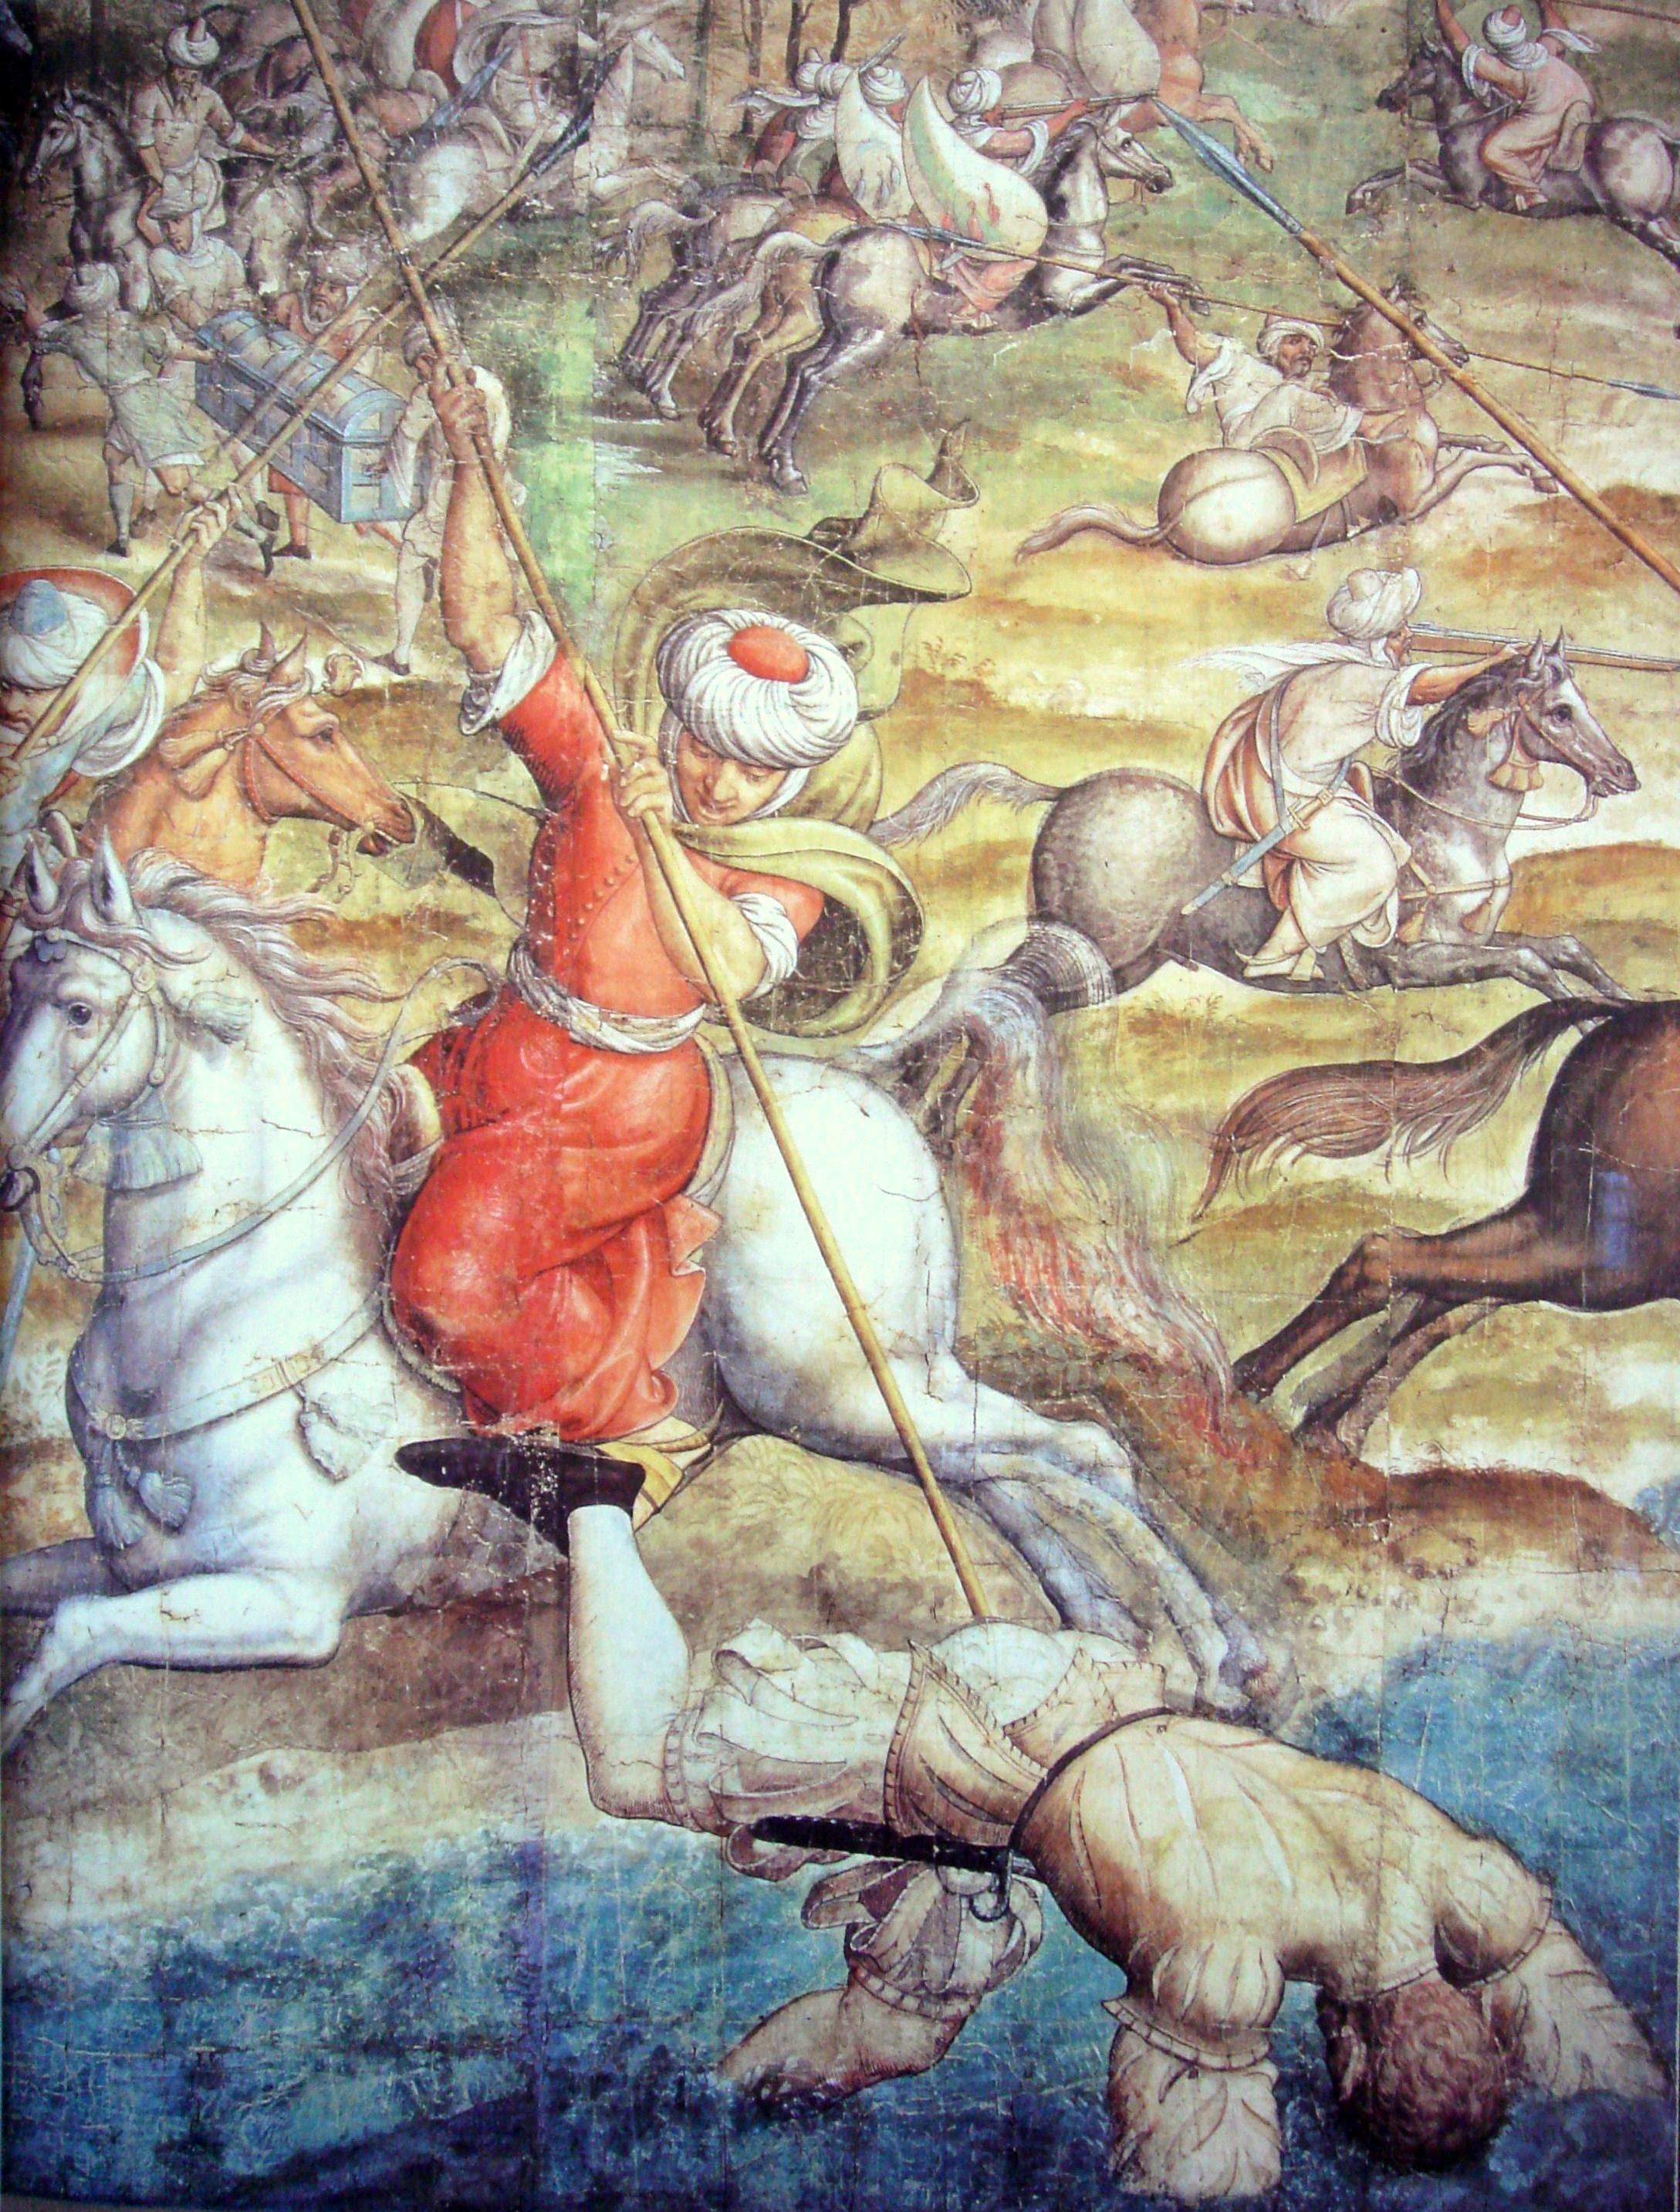 File:Battle of Tunis 1535 Charles V vs Barbarossa.jpg